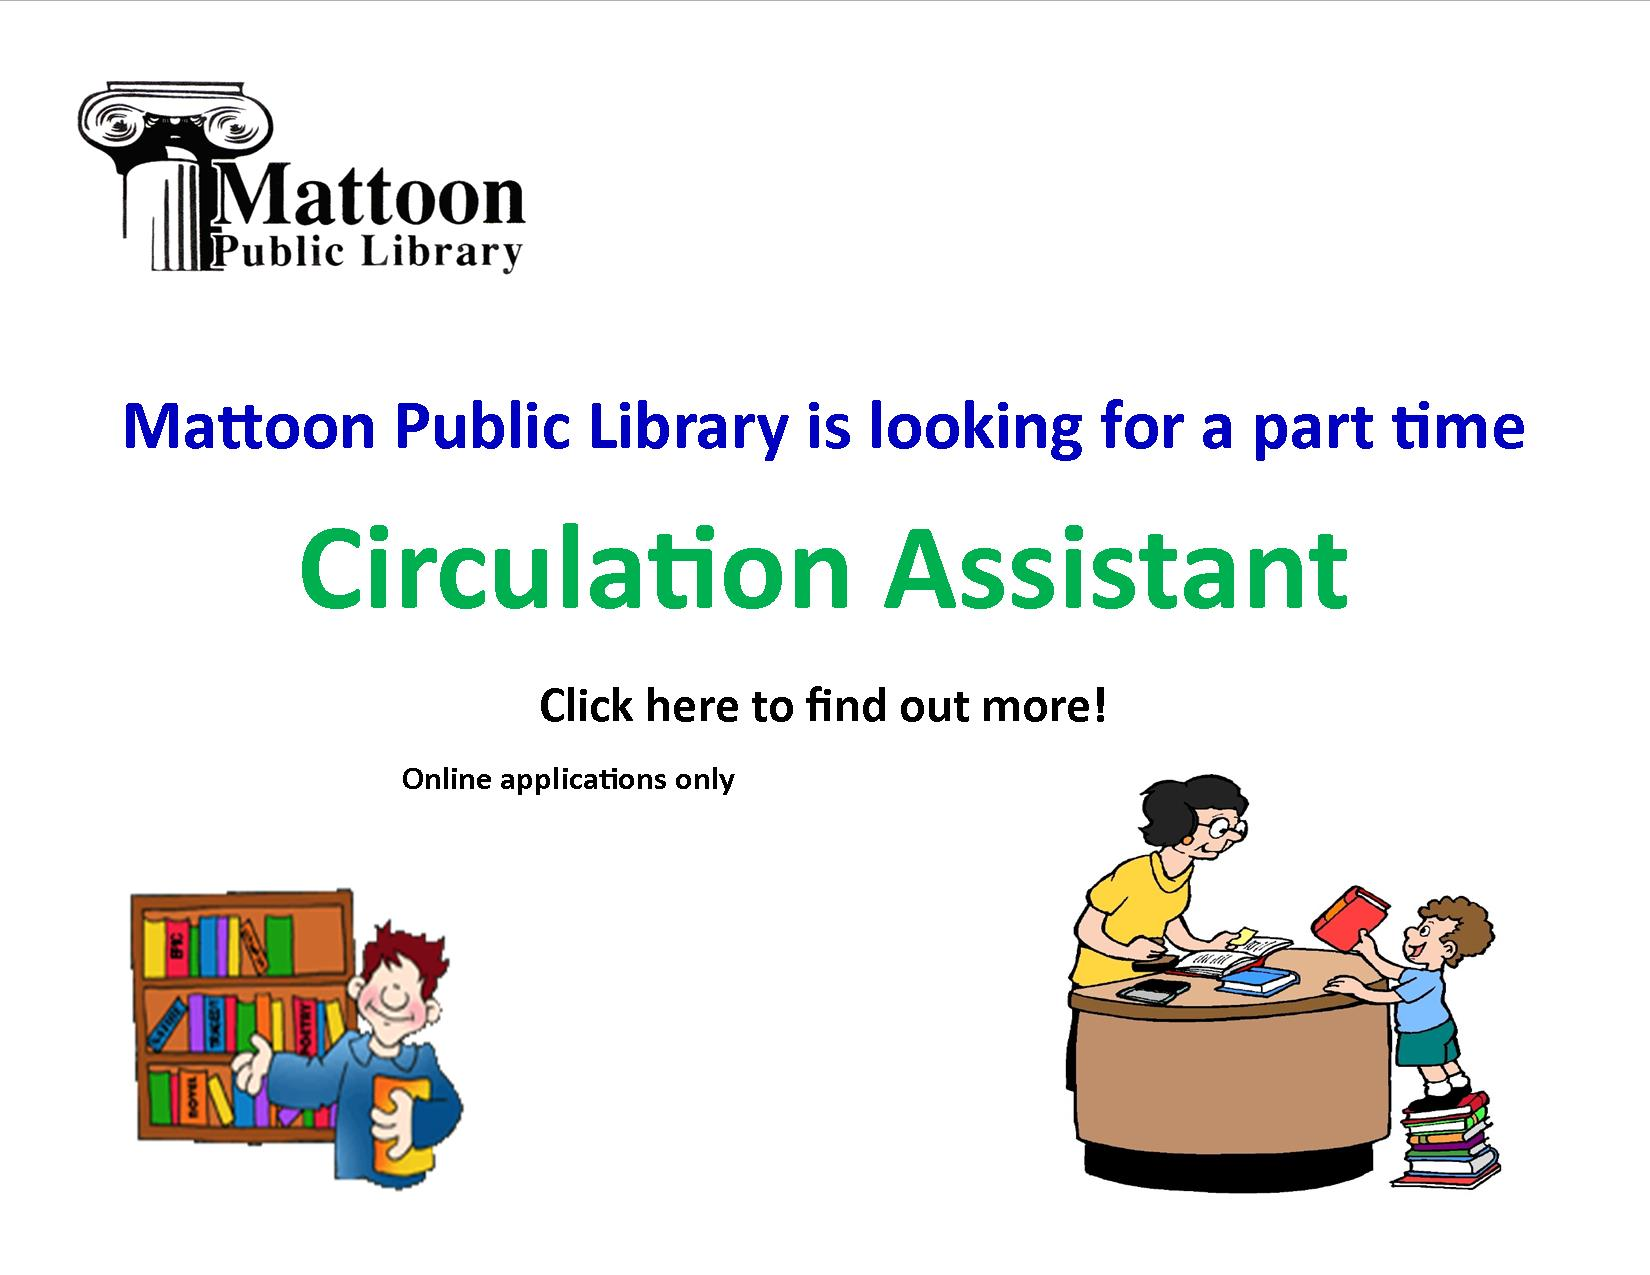 We are now accepting applications through email. Click the image to find out more information!